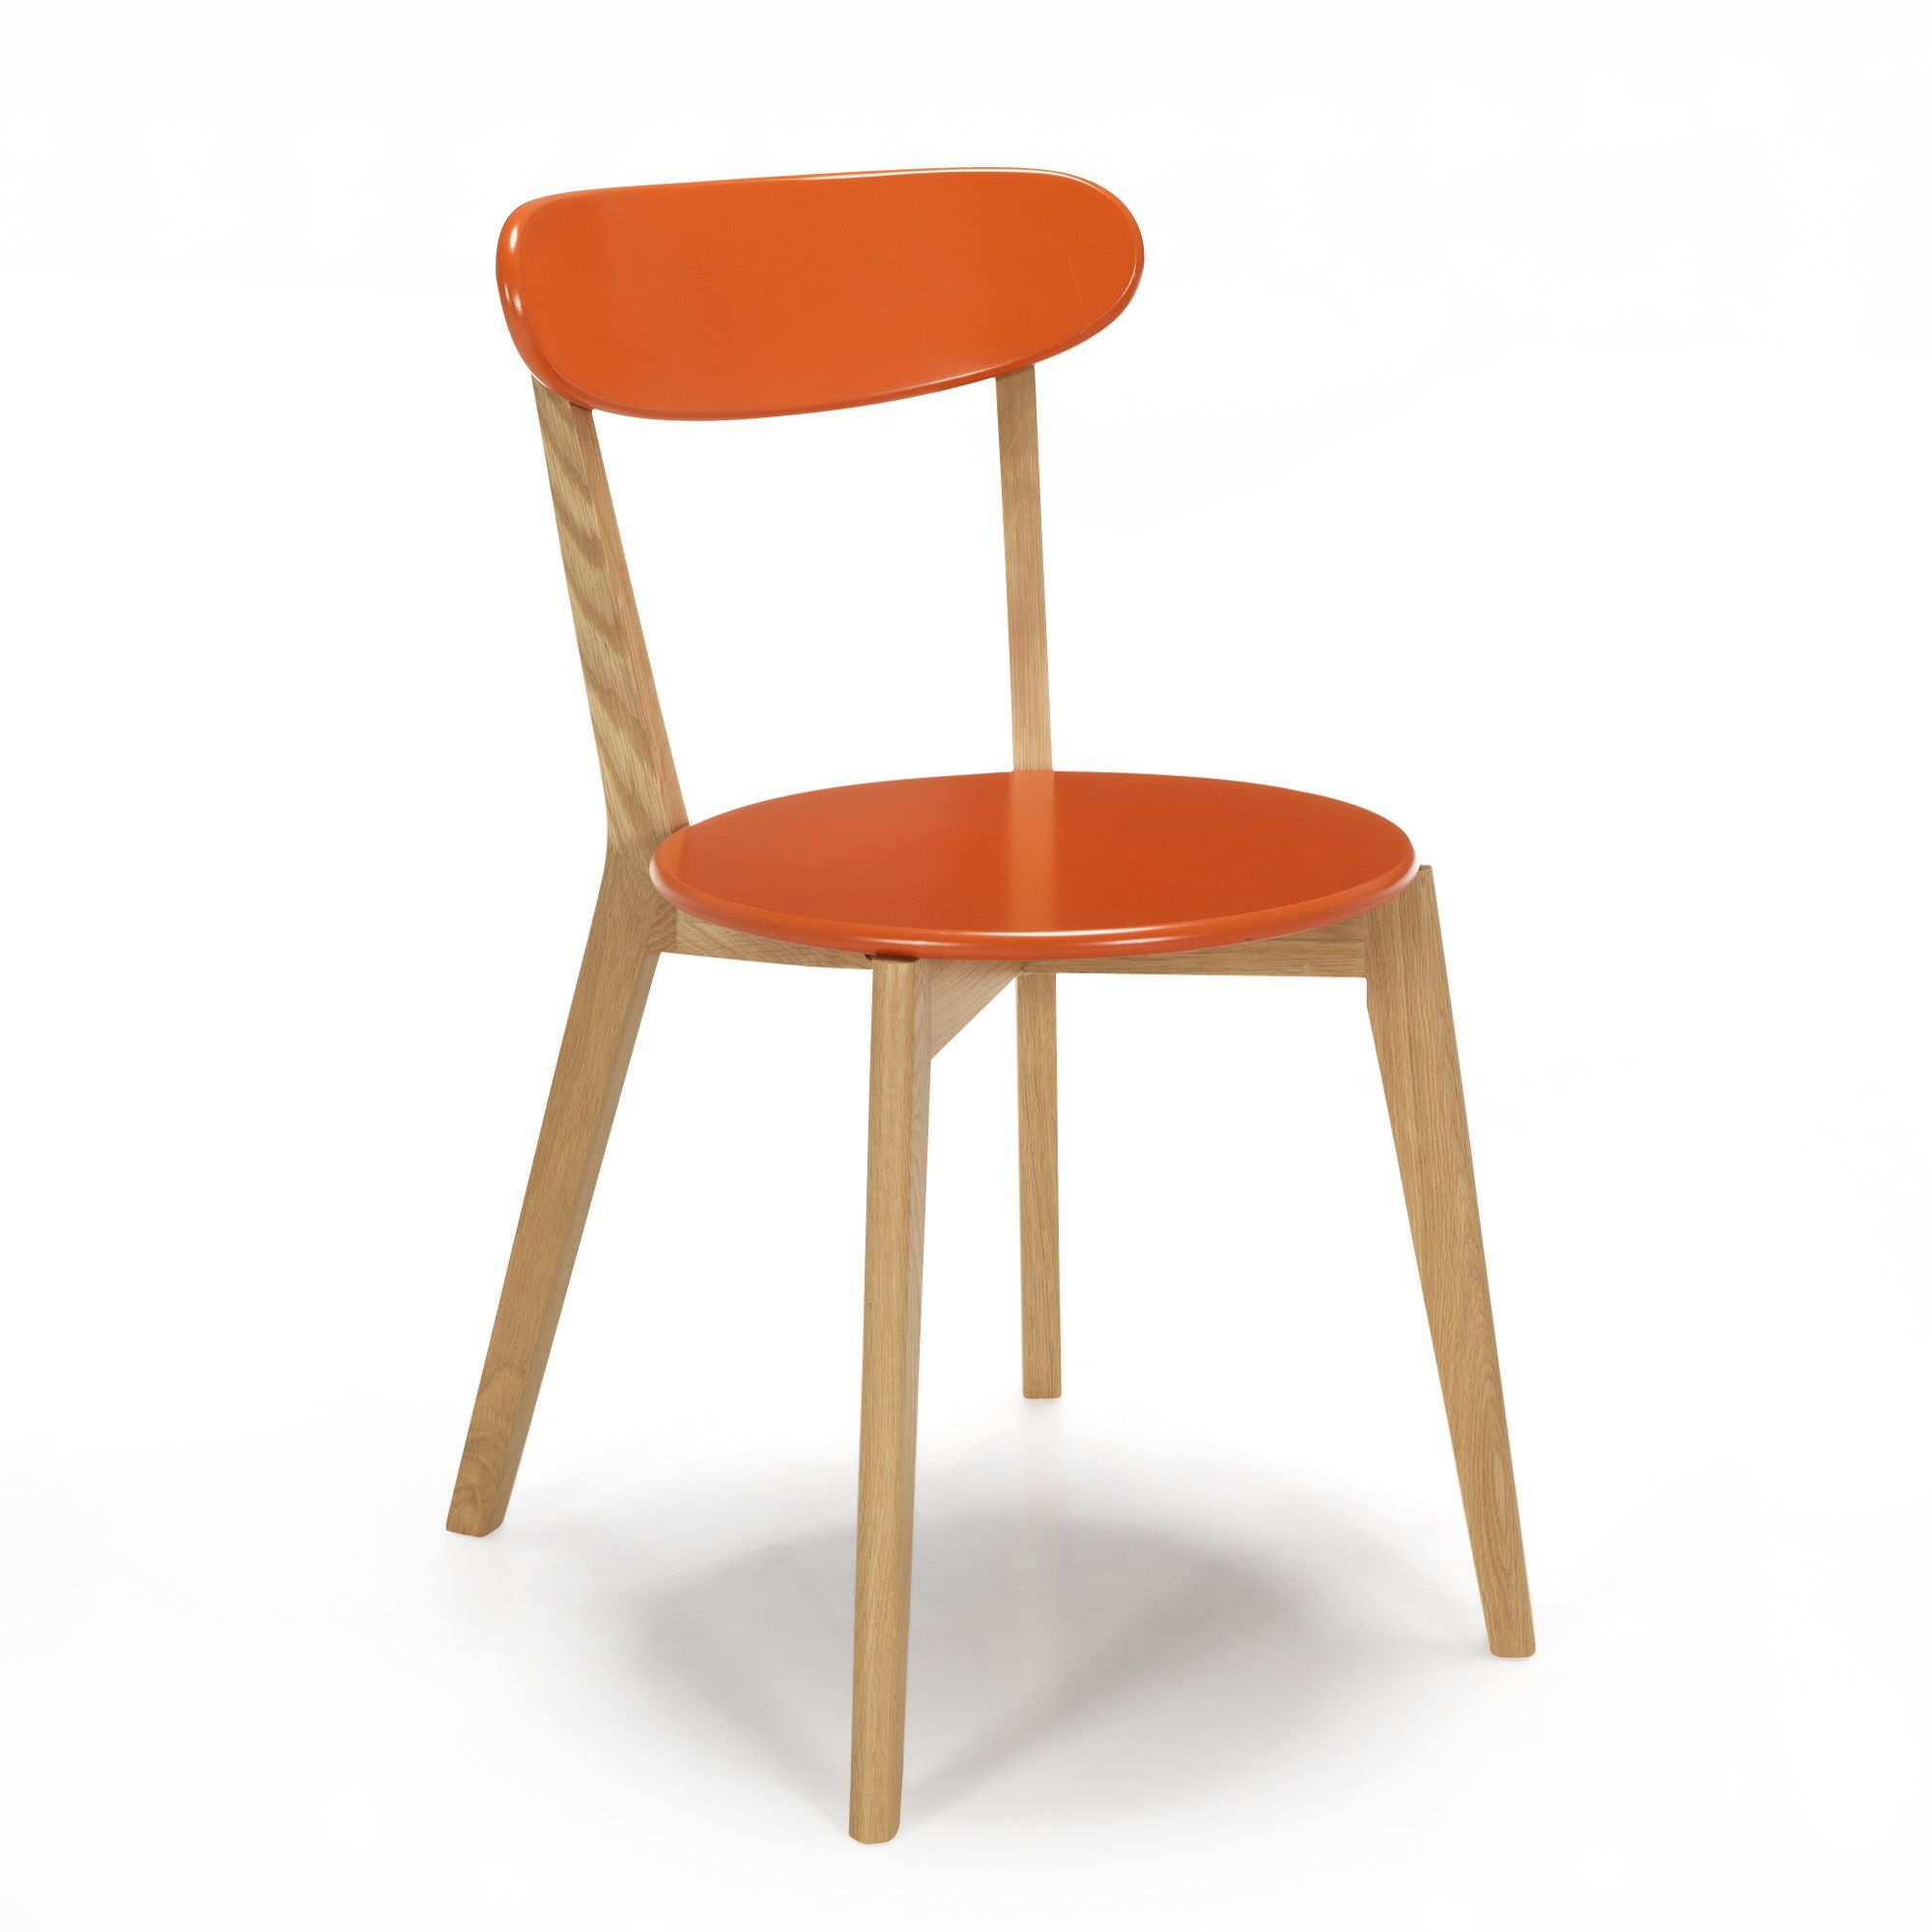 chaise design scandinave coloris corail siwa chaises tables chaises salon salle manger par pice dcoration intrieur alinea - Chaise Salon Design